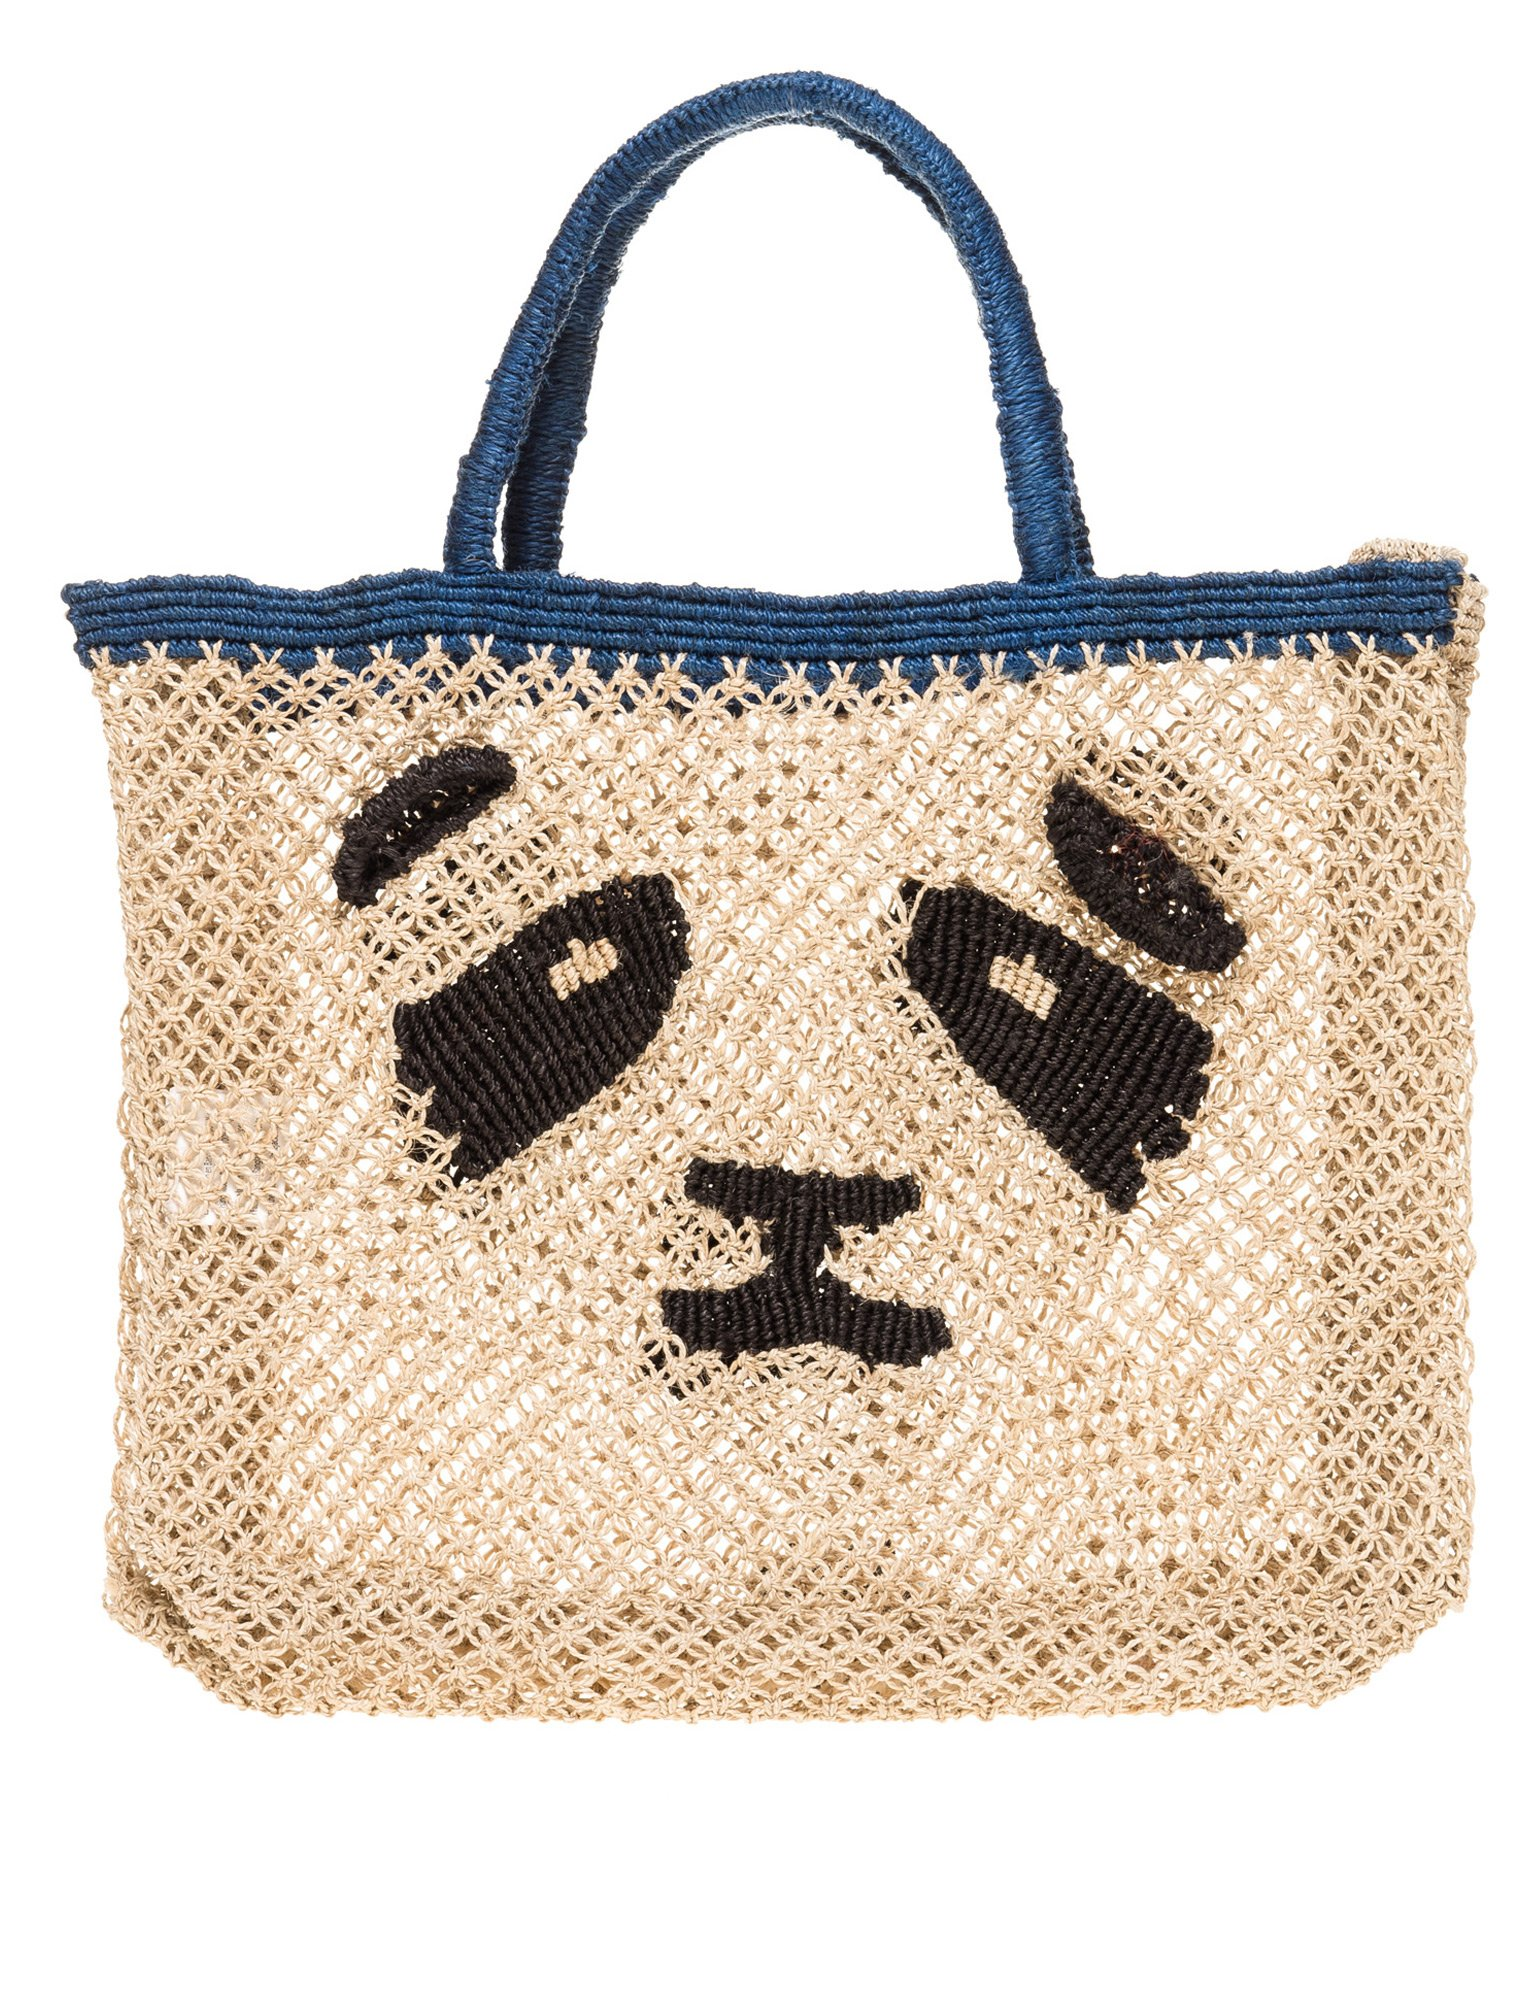 The Jacksons Women's Panda Small Women's Beige Jute Bag Beige